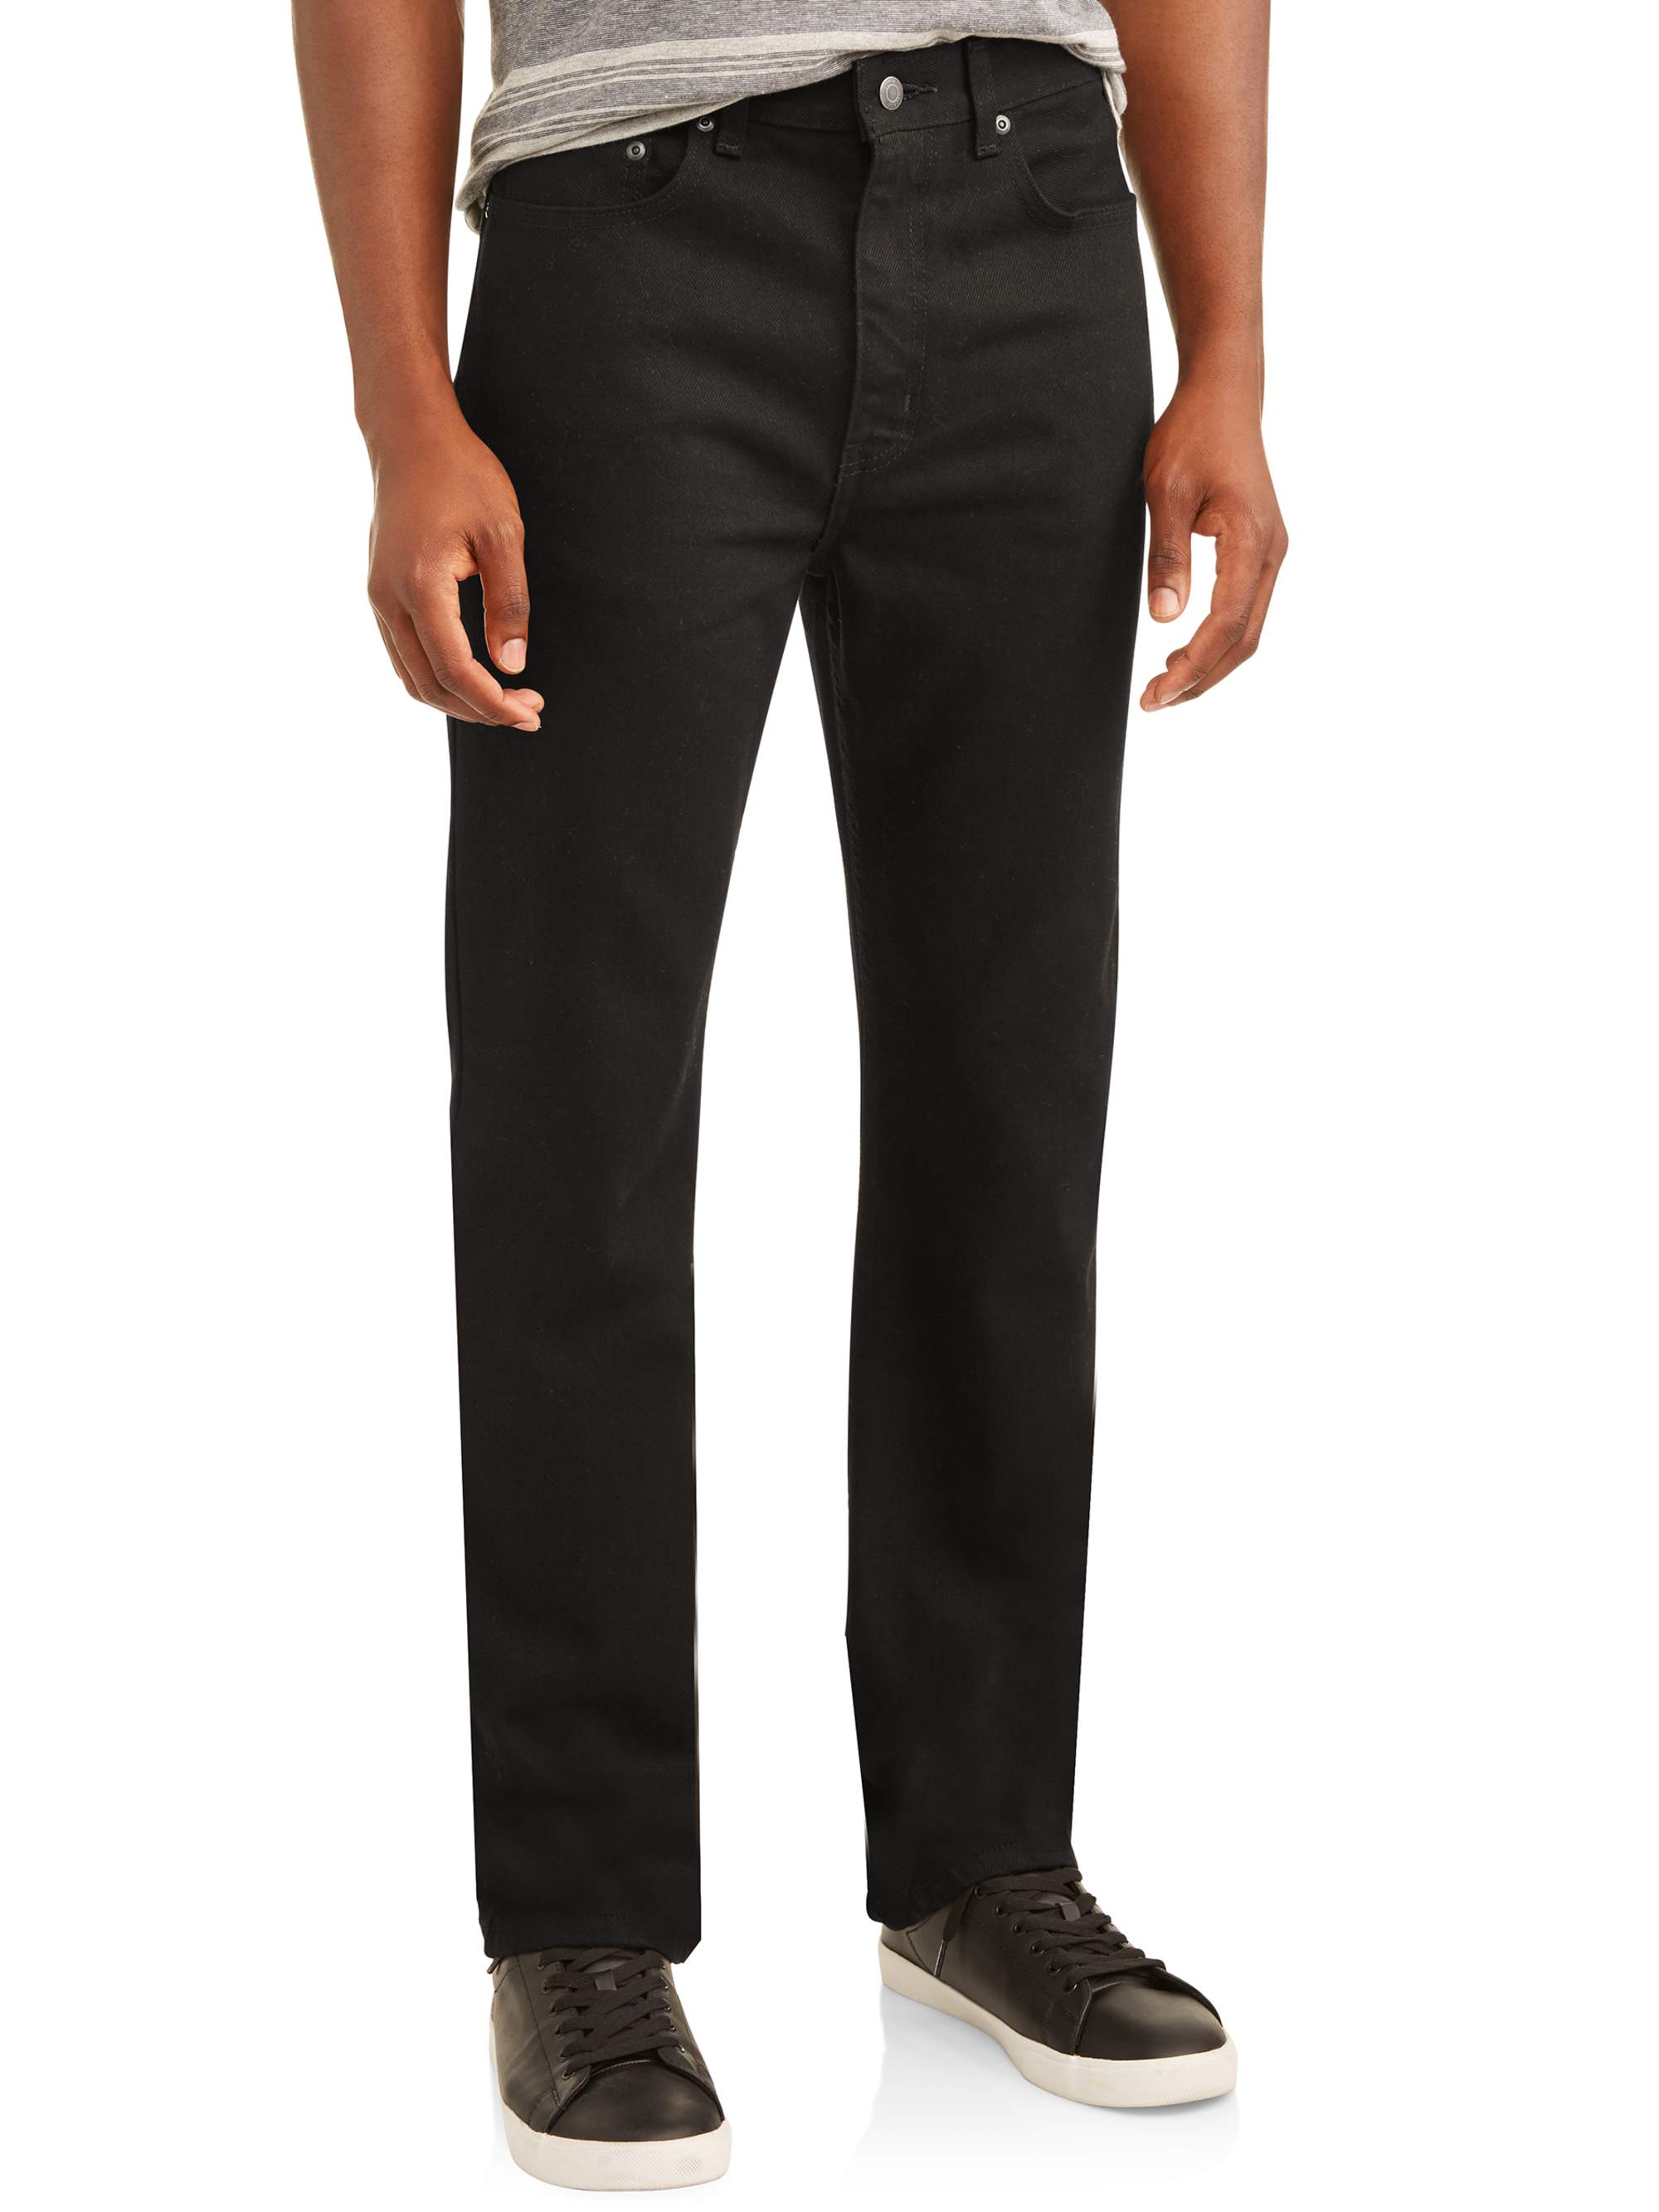 Big Men's Regular Fit Jean